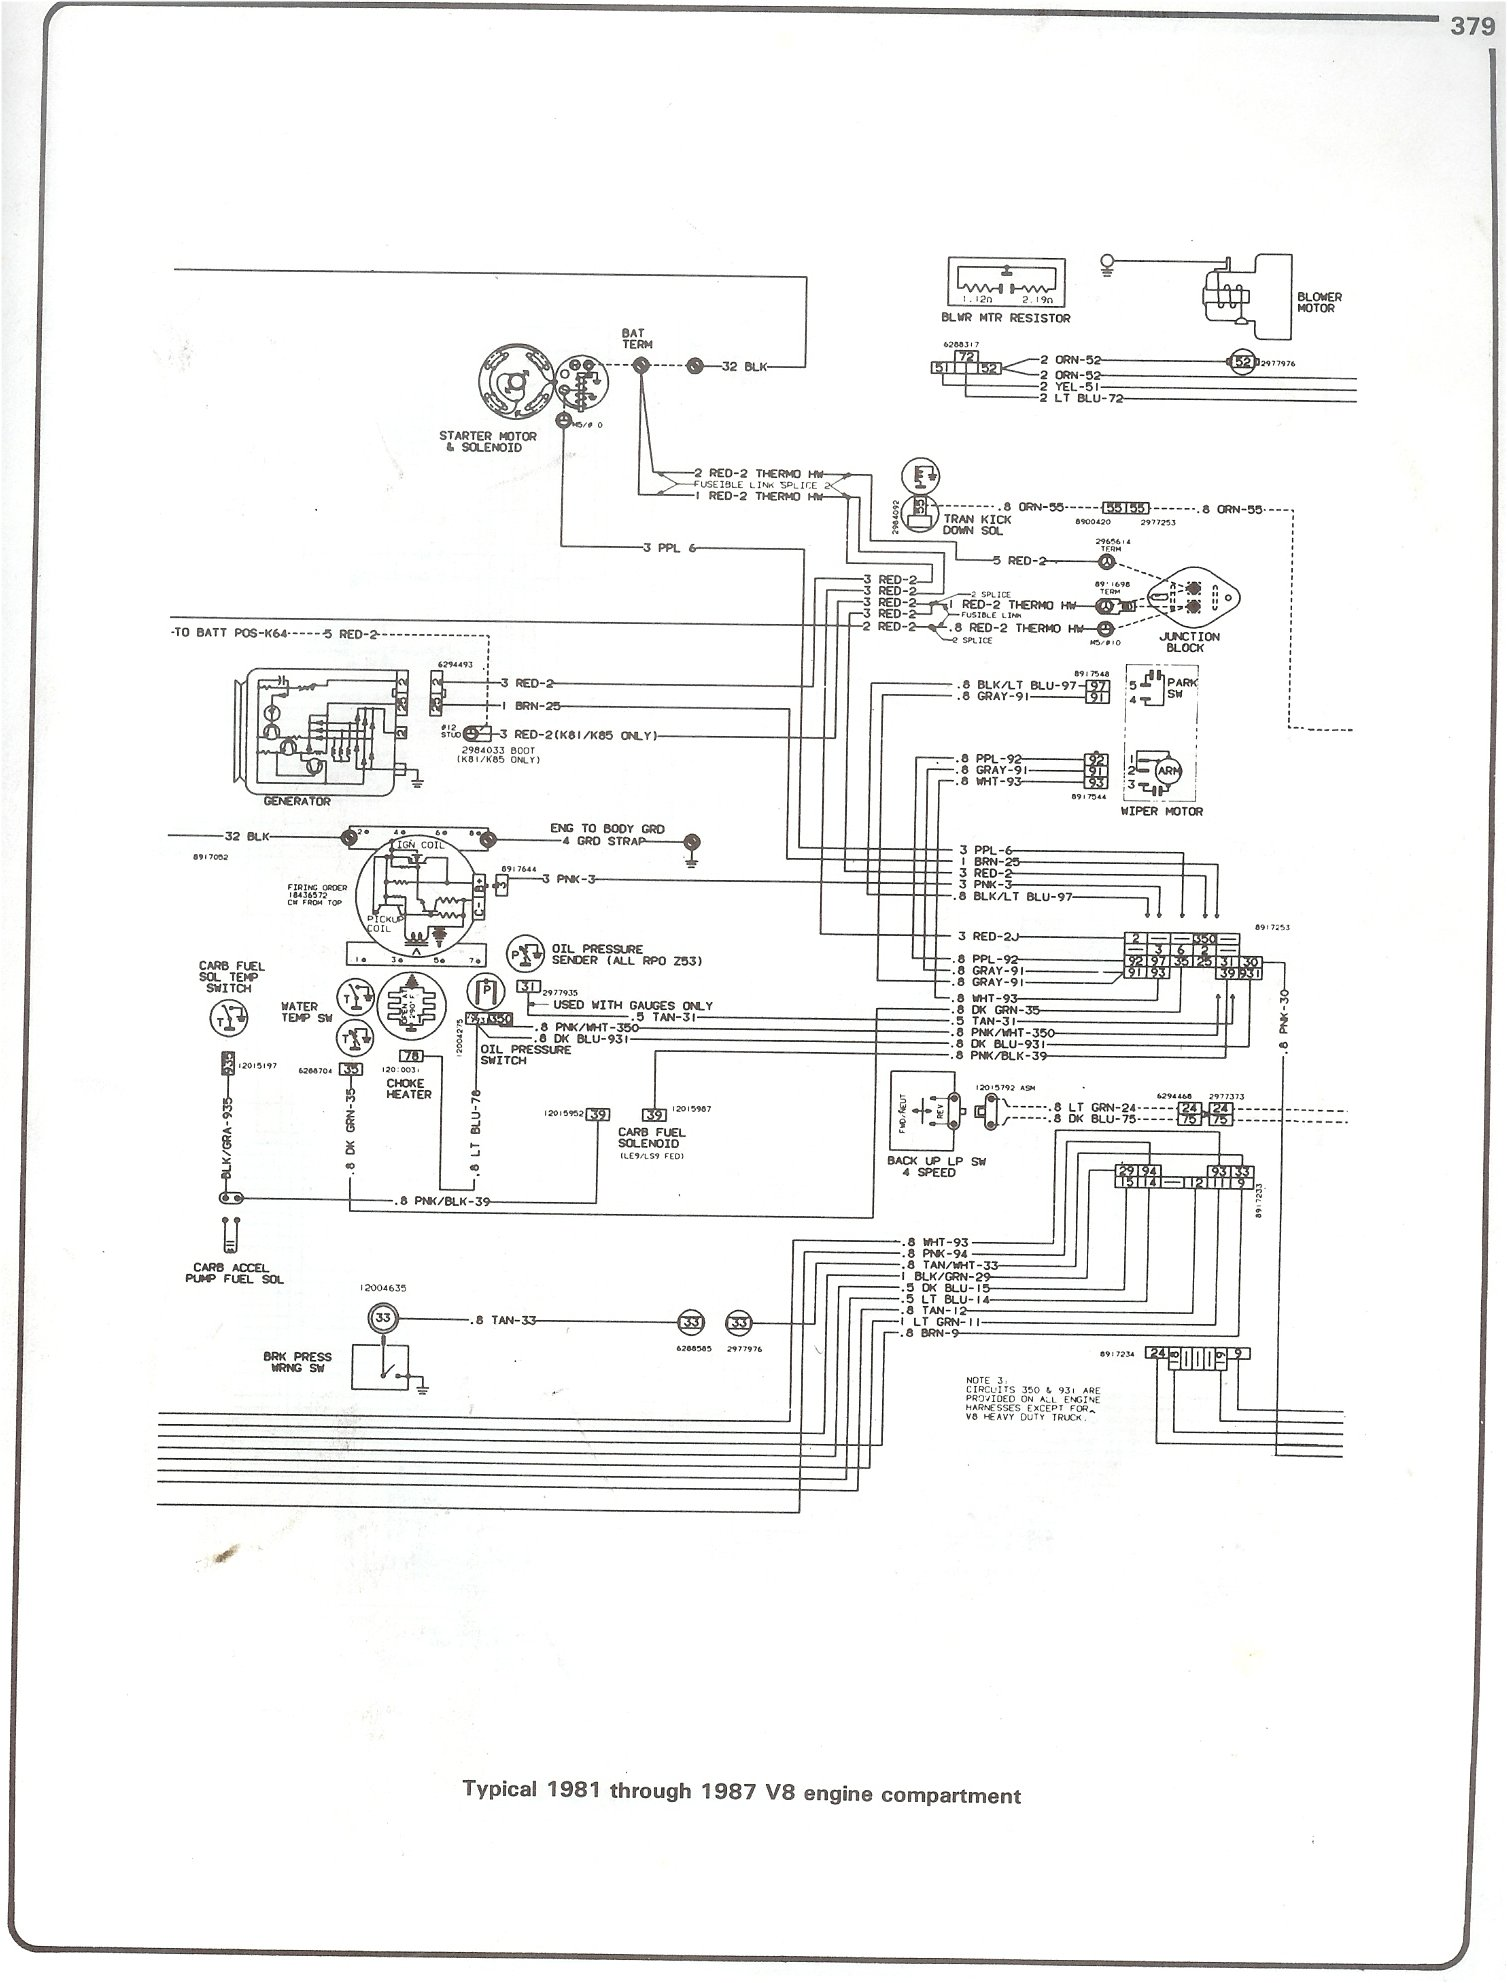 hight resolution of complete 73 87 wiring diagrams rh forum 73 87chevytrucks com 1986 gmc sierra radio wiring diagram 1986 gmc sierra radio wiring diagram